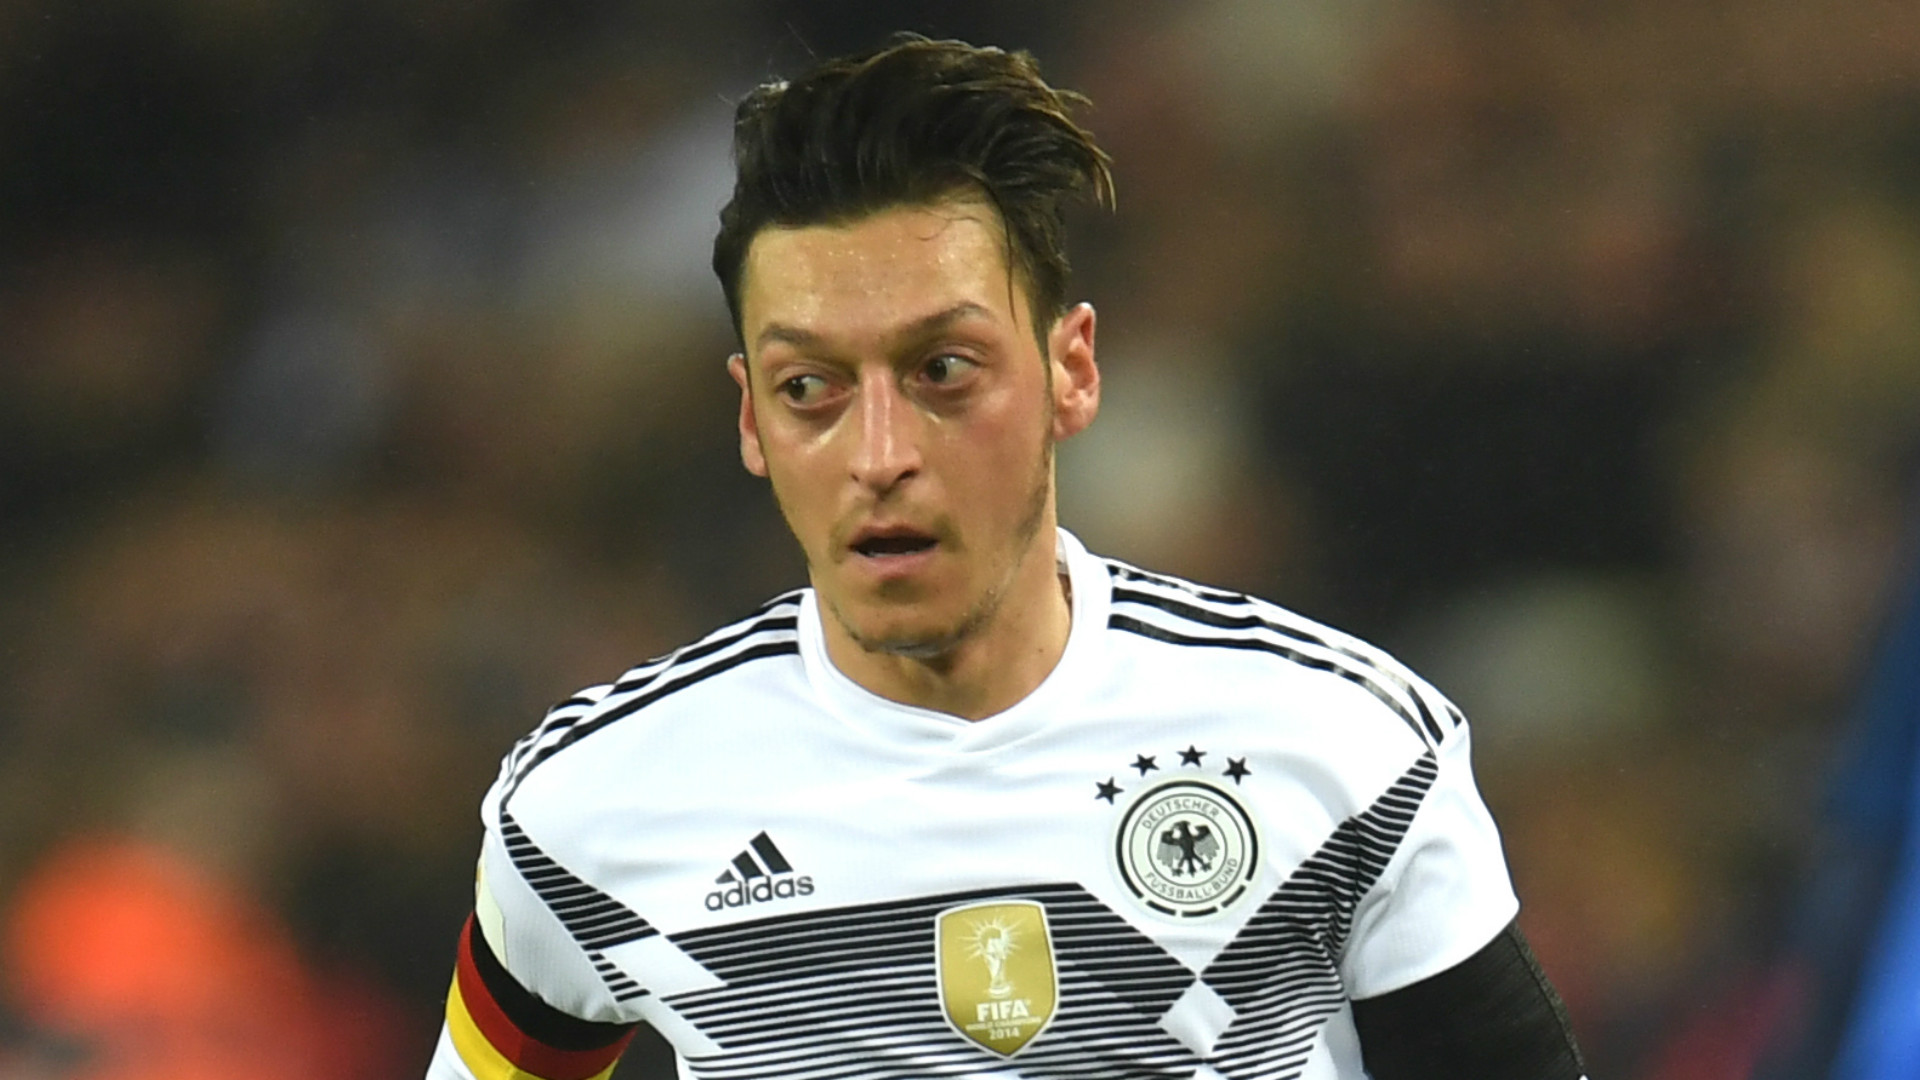 Injured Ozil to miss Germany's final warm-up